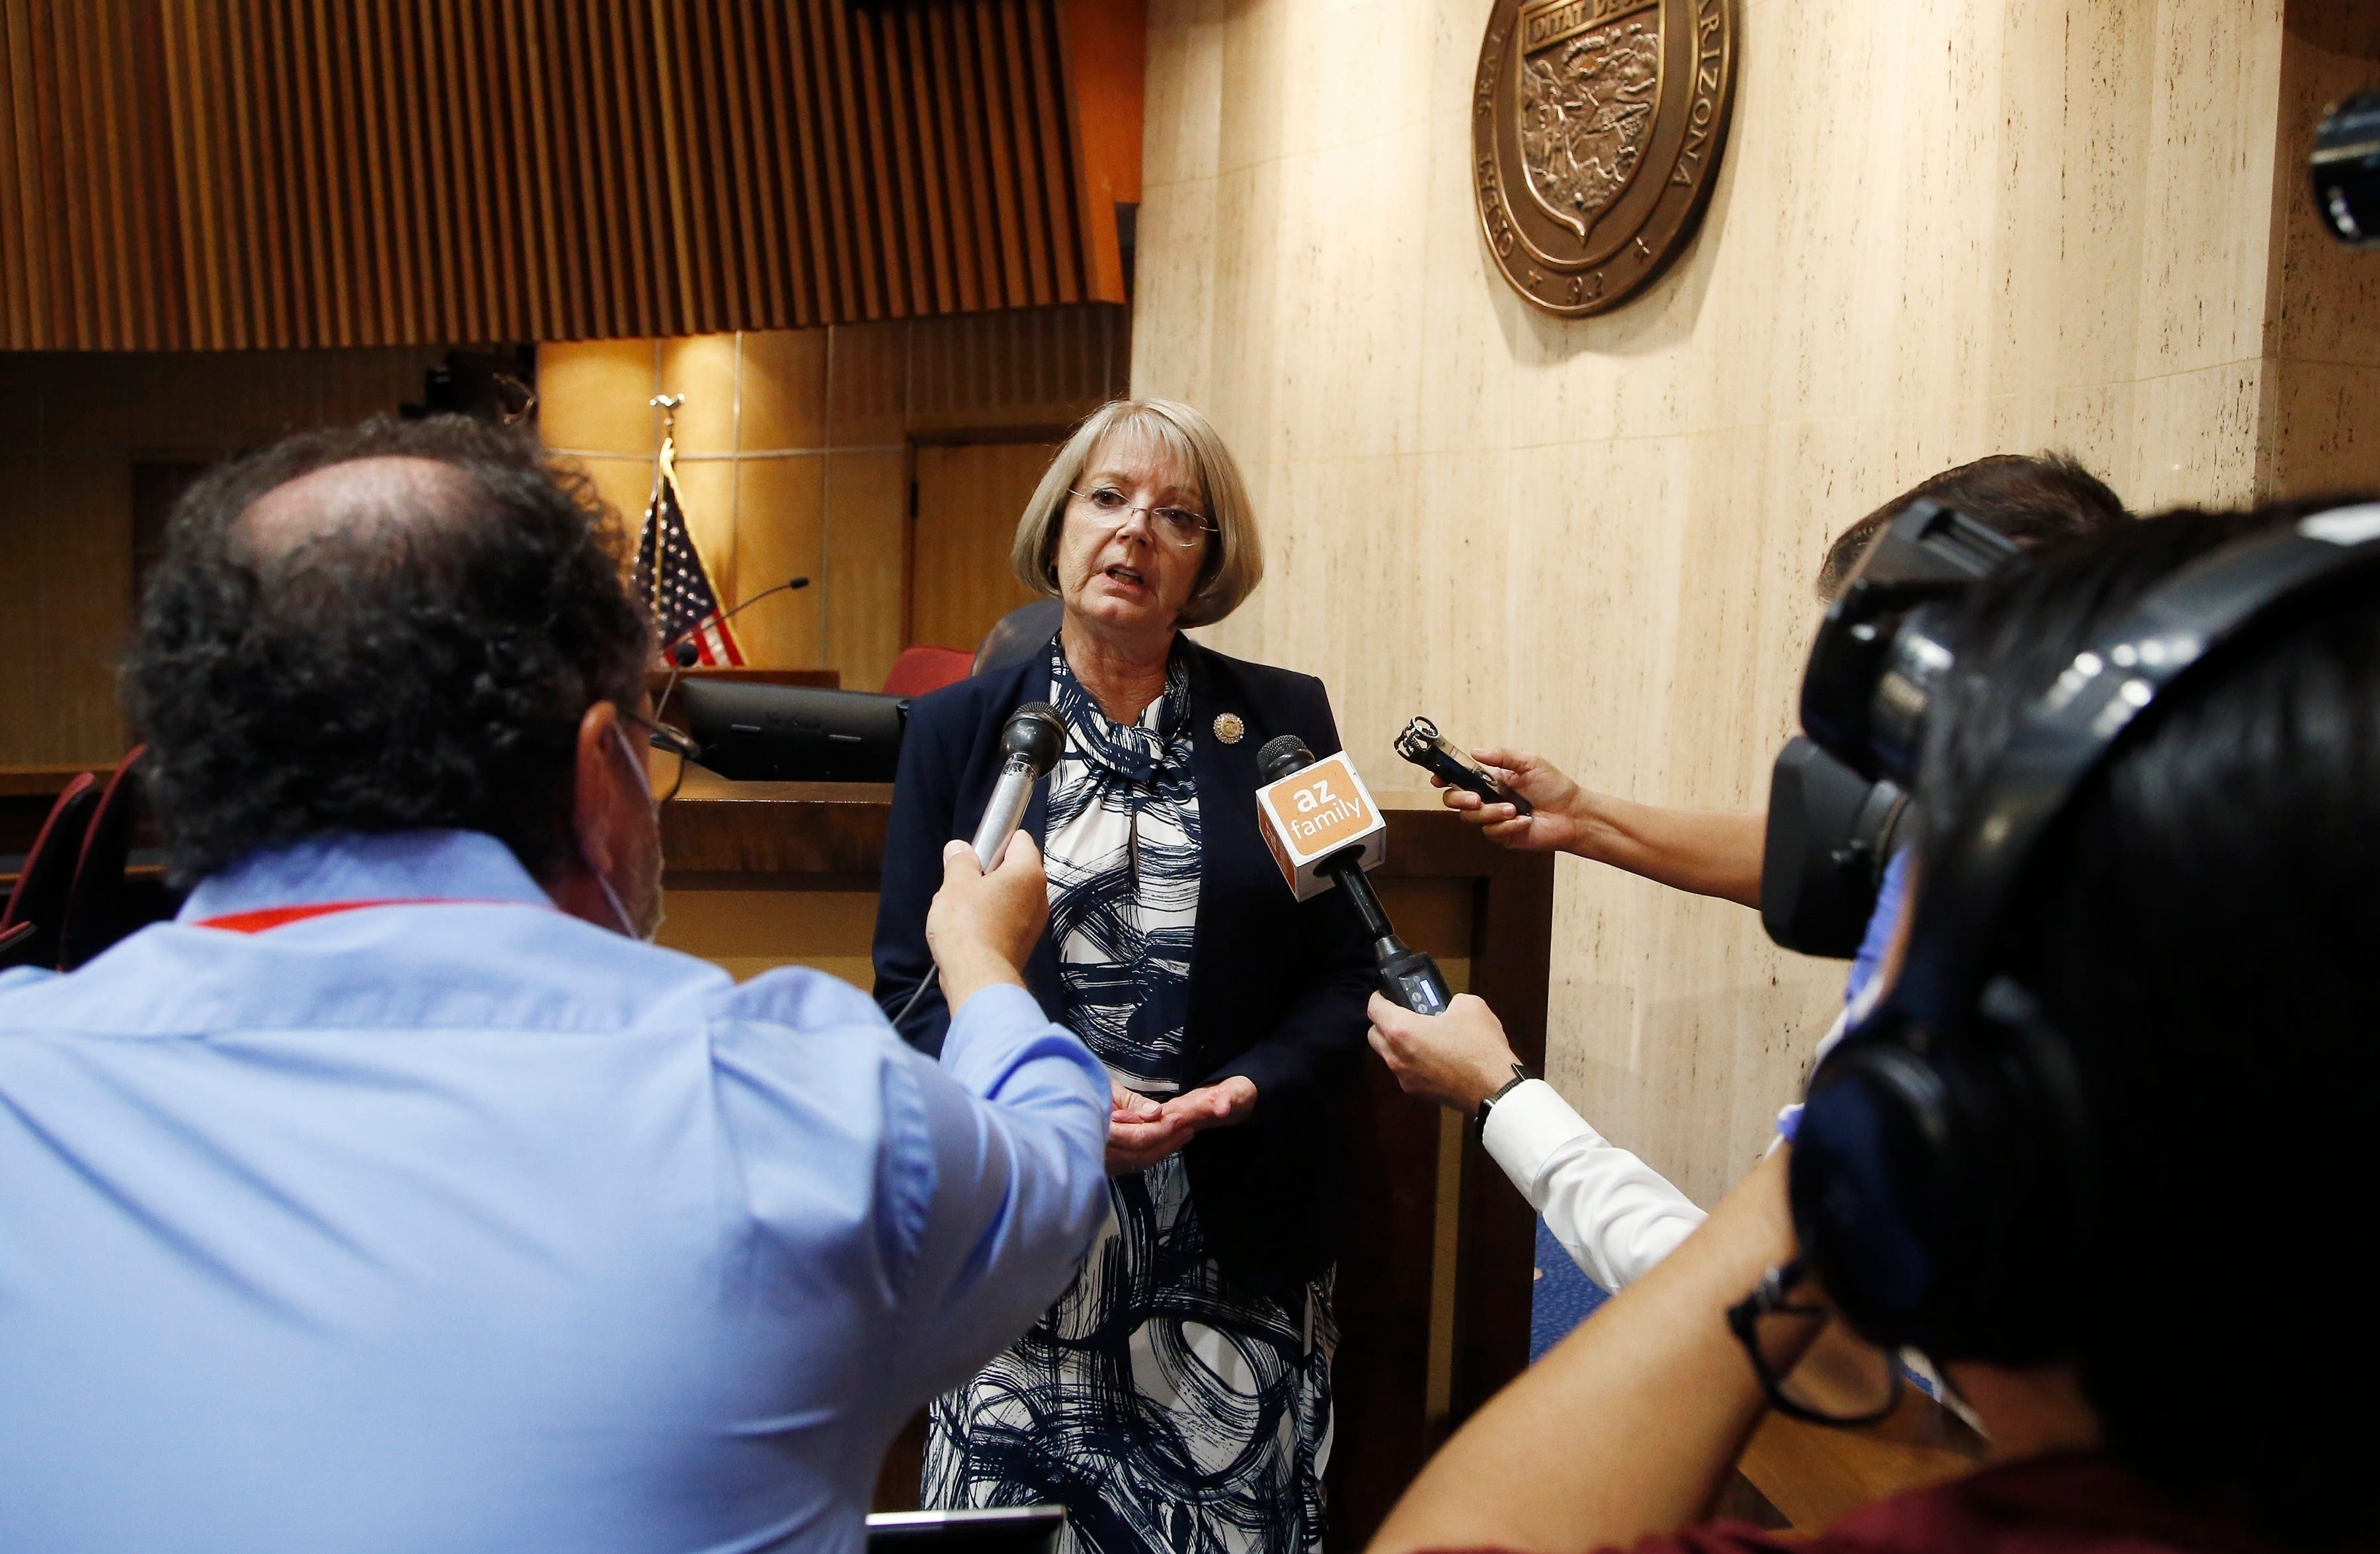 Justice Department asks Arizona Senate to respond to concerns about election audit